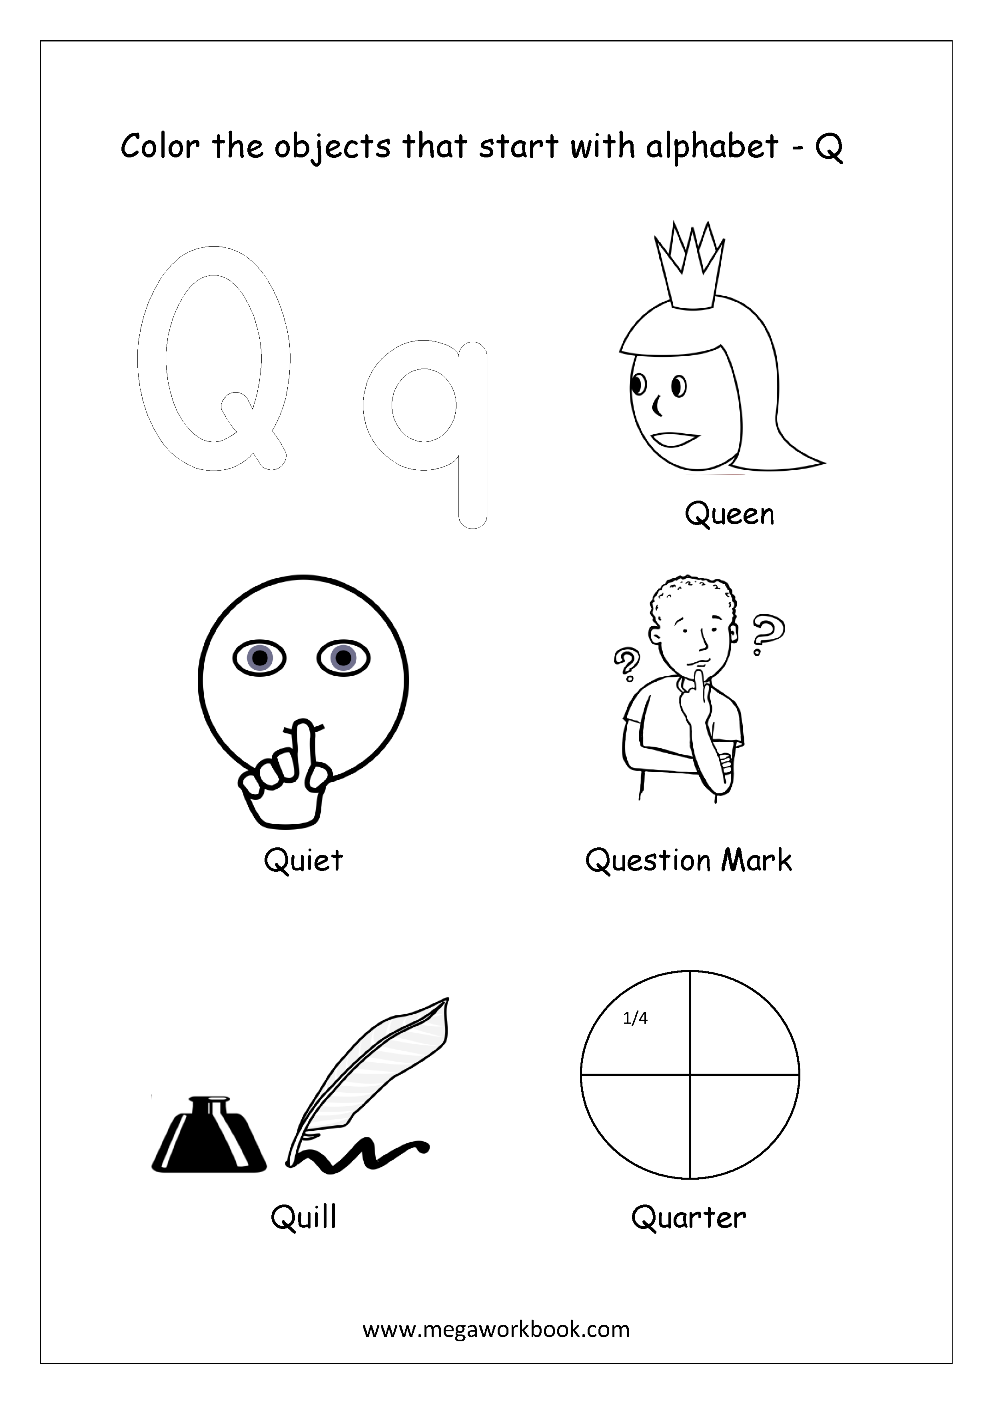 coloring pages starting with q | Alphabet Picture Coloring Pages - Things That Start With ...